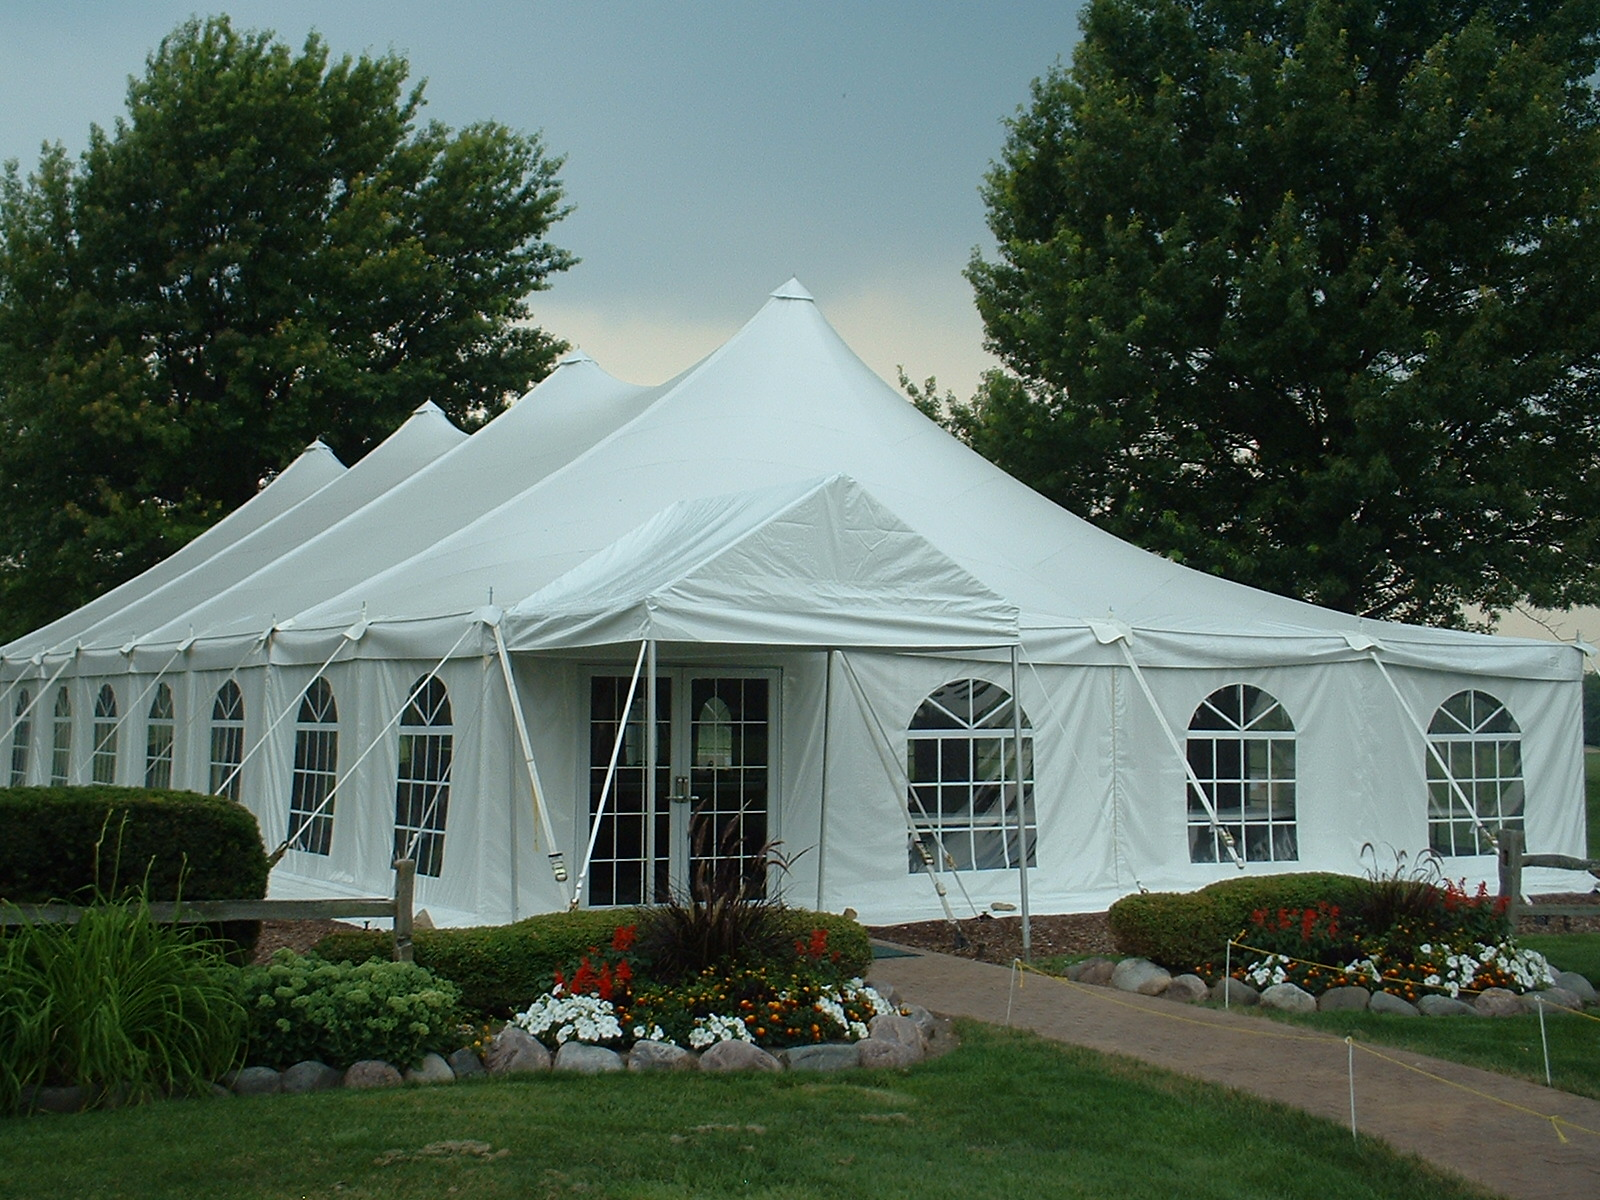 Countryside Banquet & Catering, Washington, Illinois, Garden Tent, 60x100 EuroTent